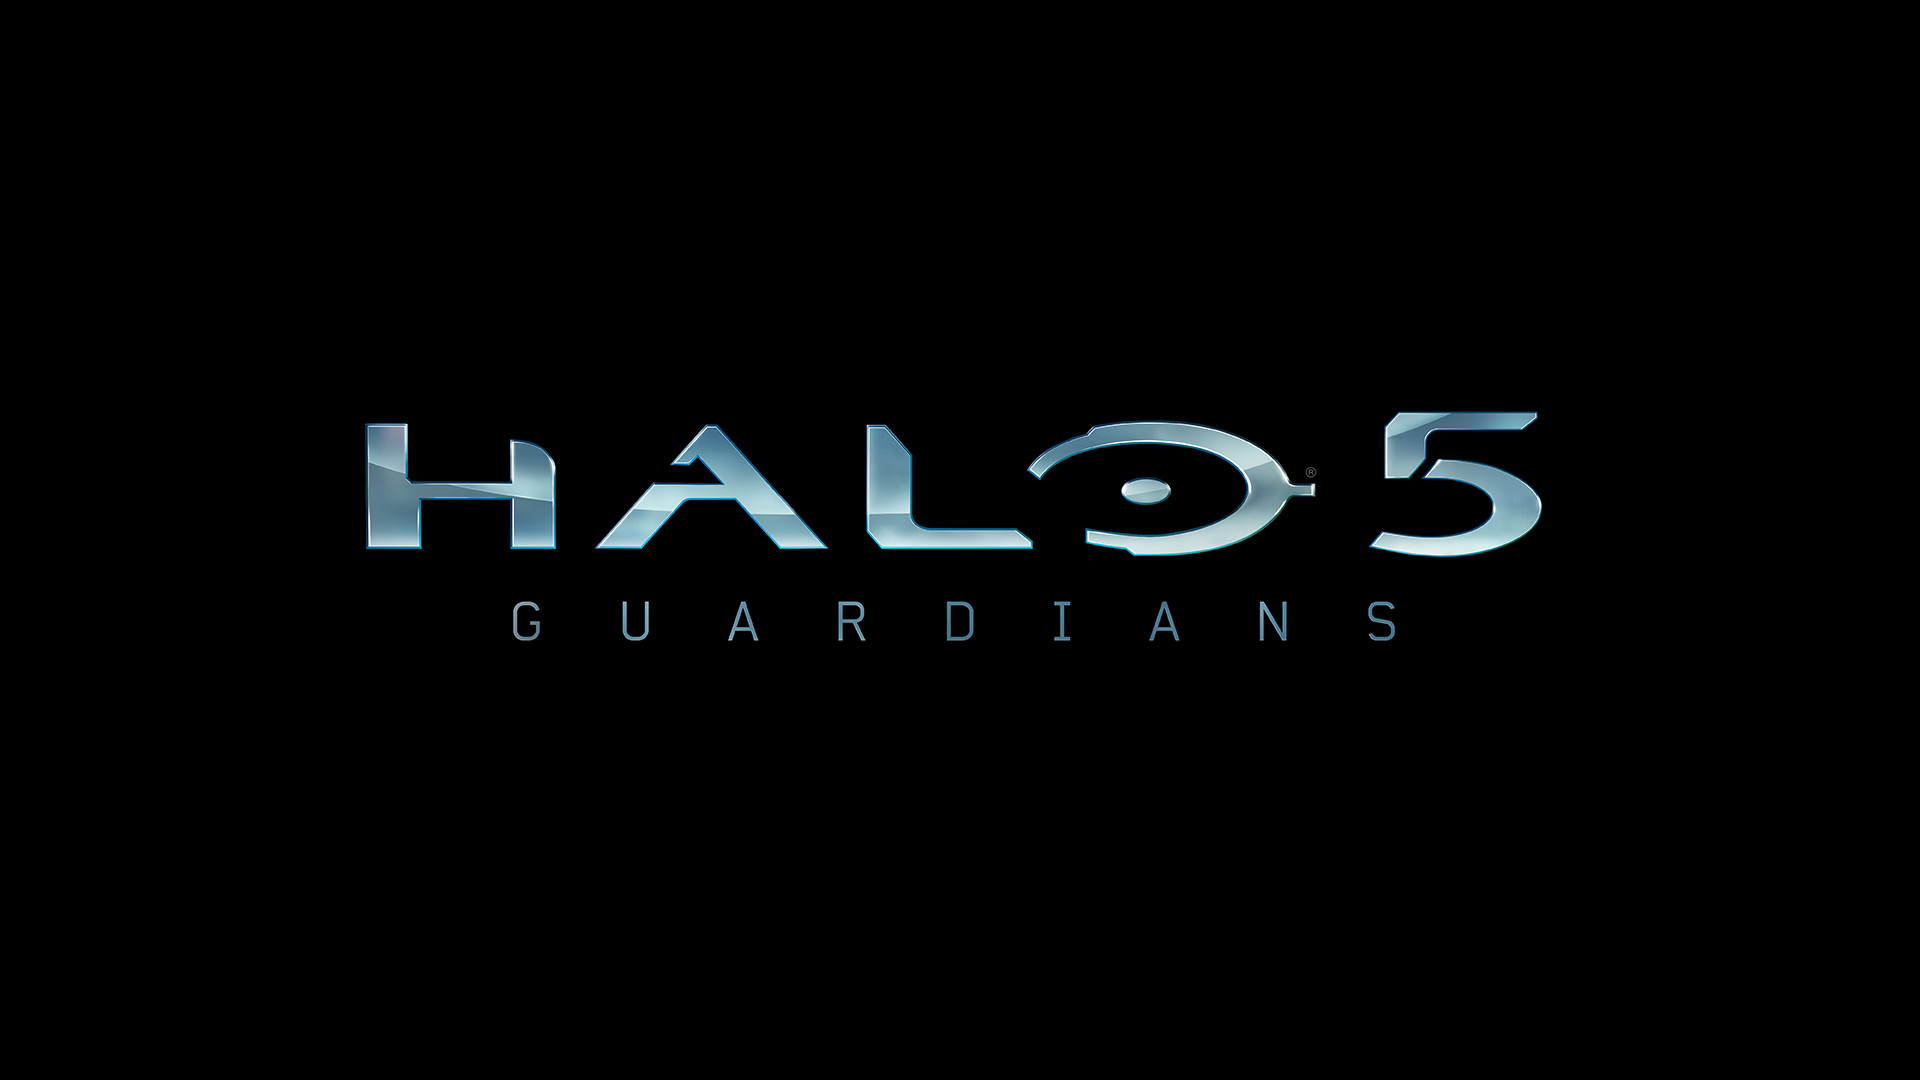 Iphone 5 wallpapers 0232 7995 the wondrous pics - Halo 5 Guardians Wallpaper Geek Prime